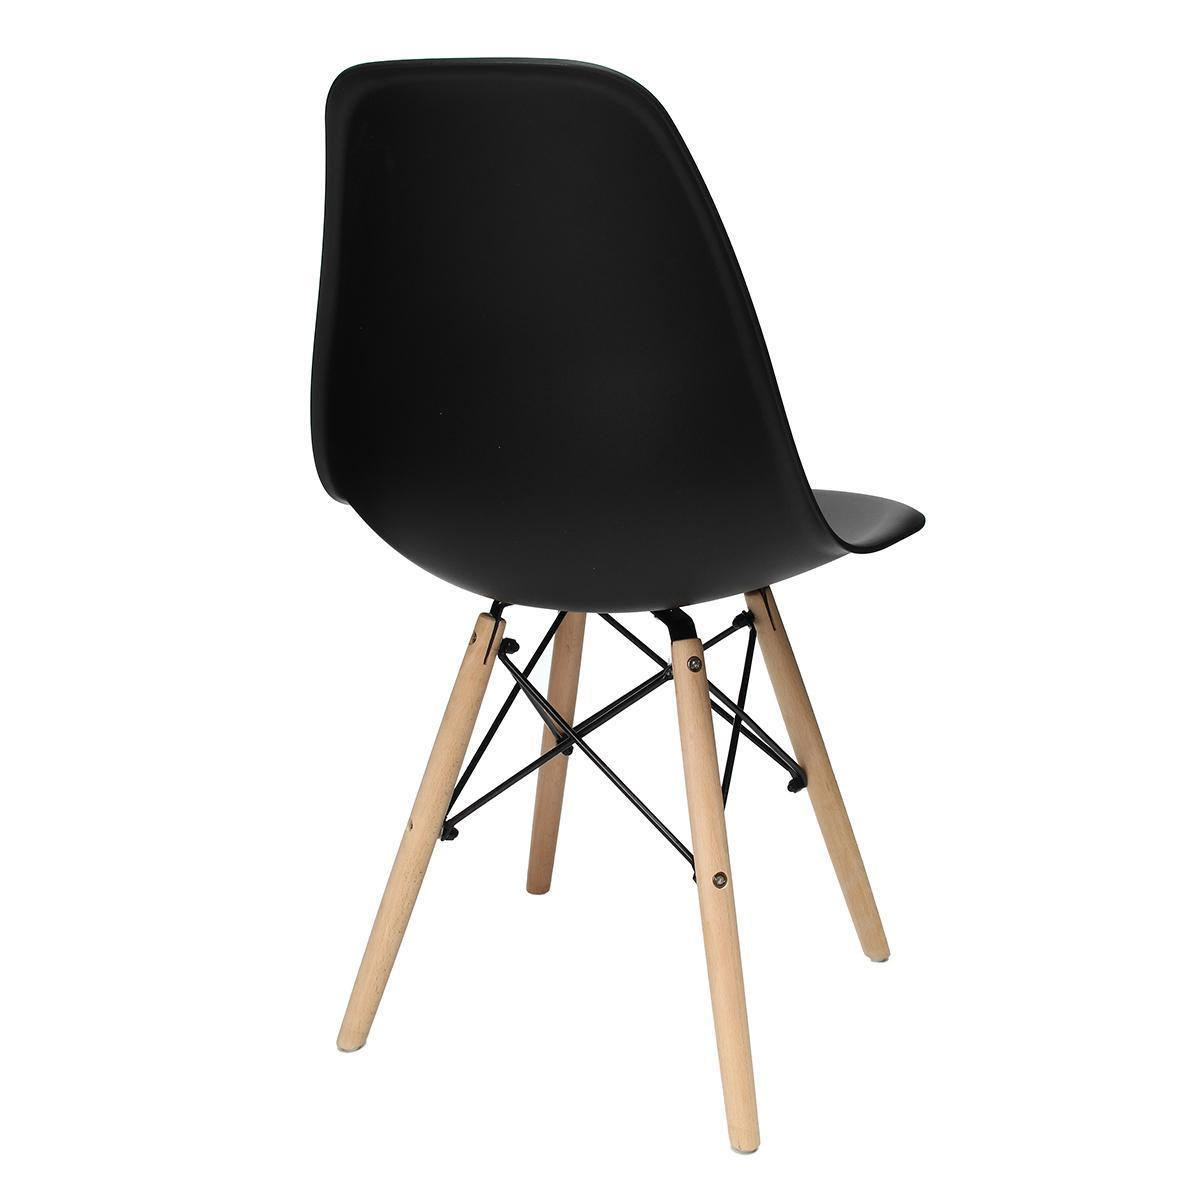 wenger posture chair folding philippines plastic wood chairs industrial metal kitchen